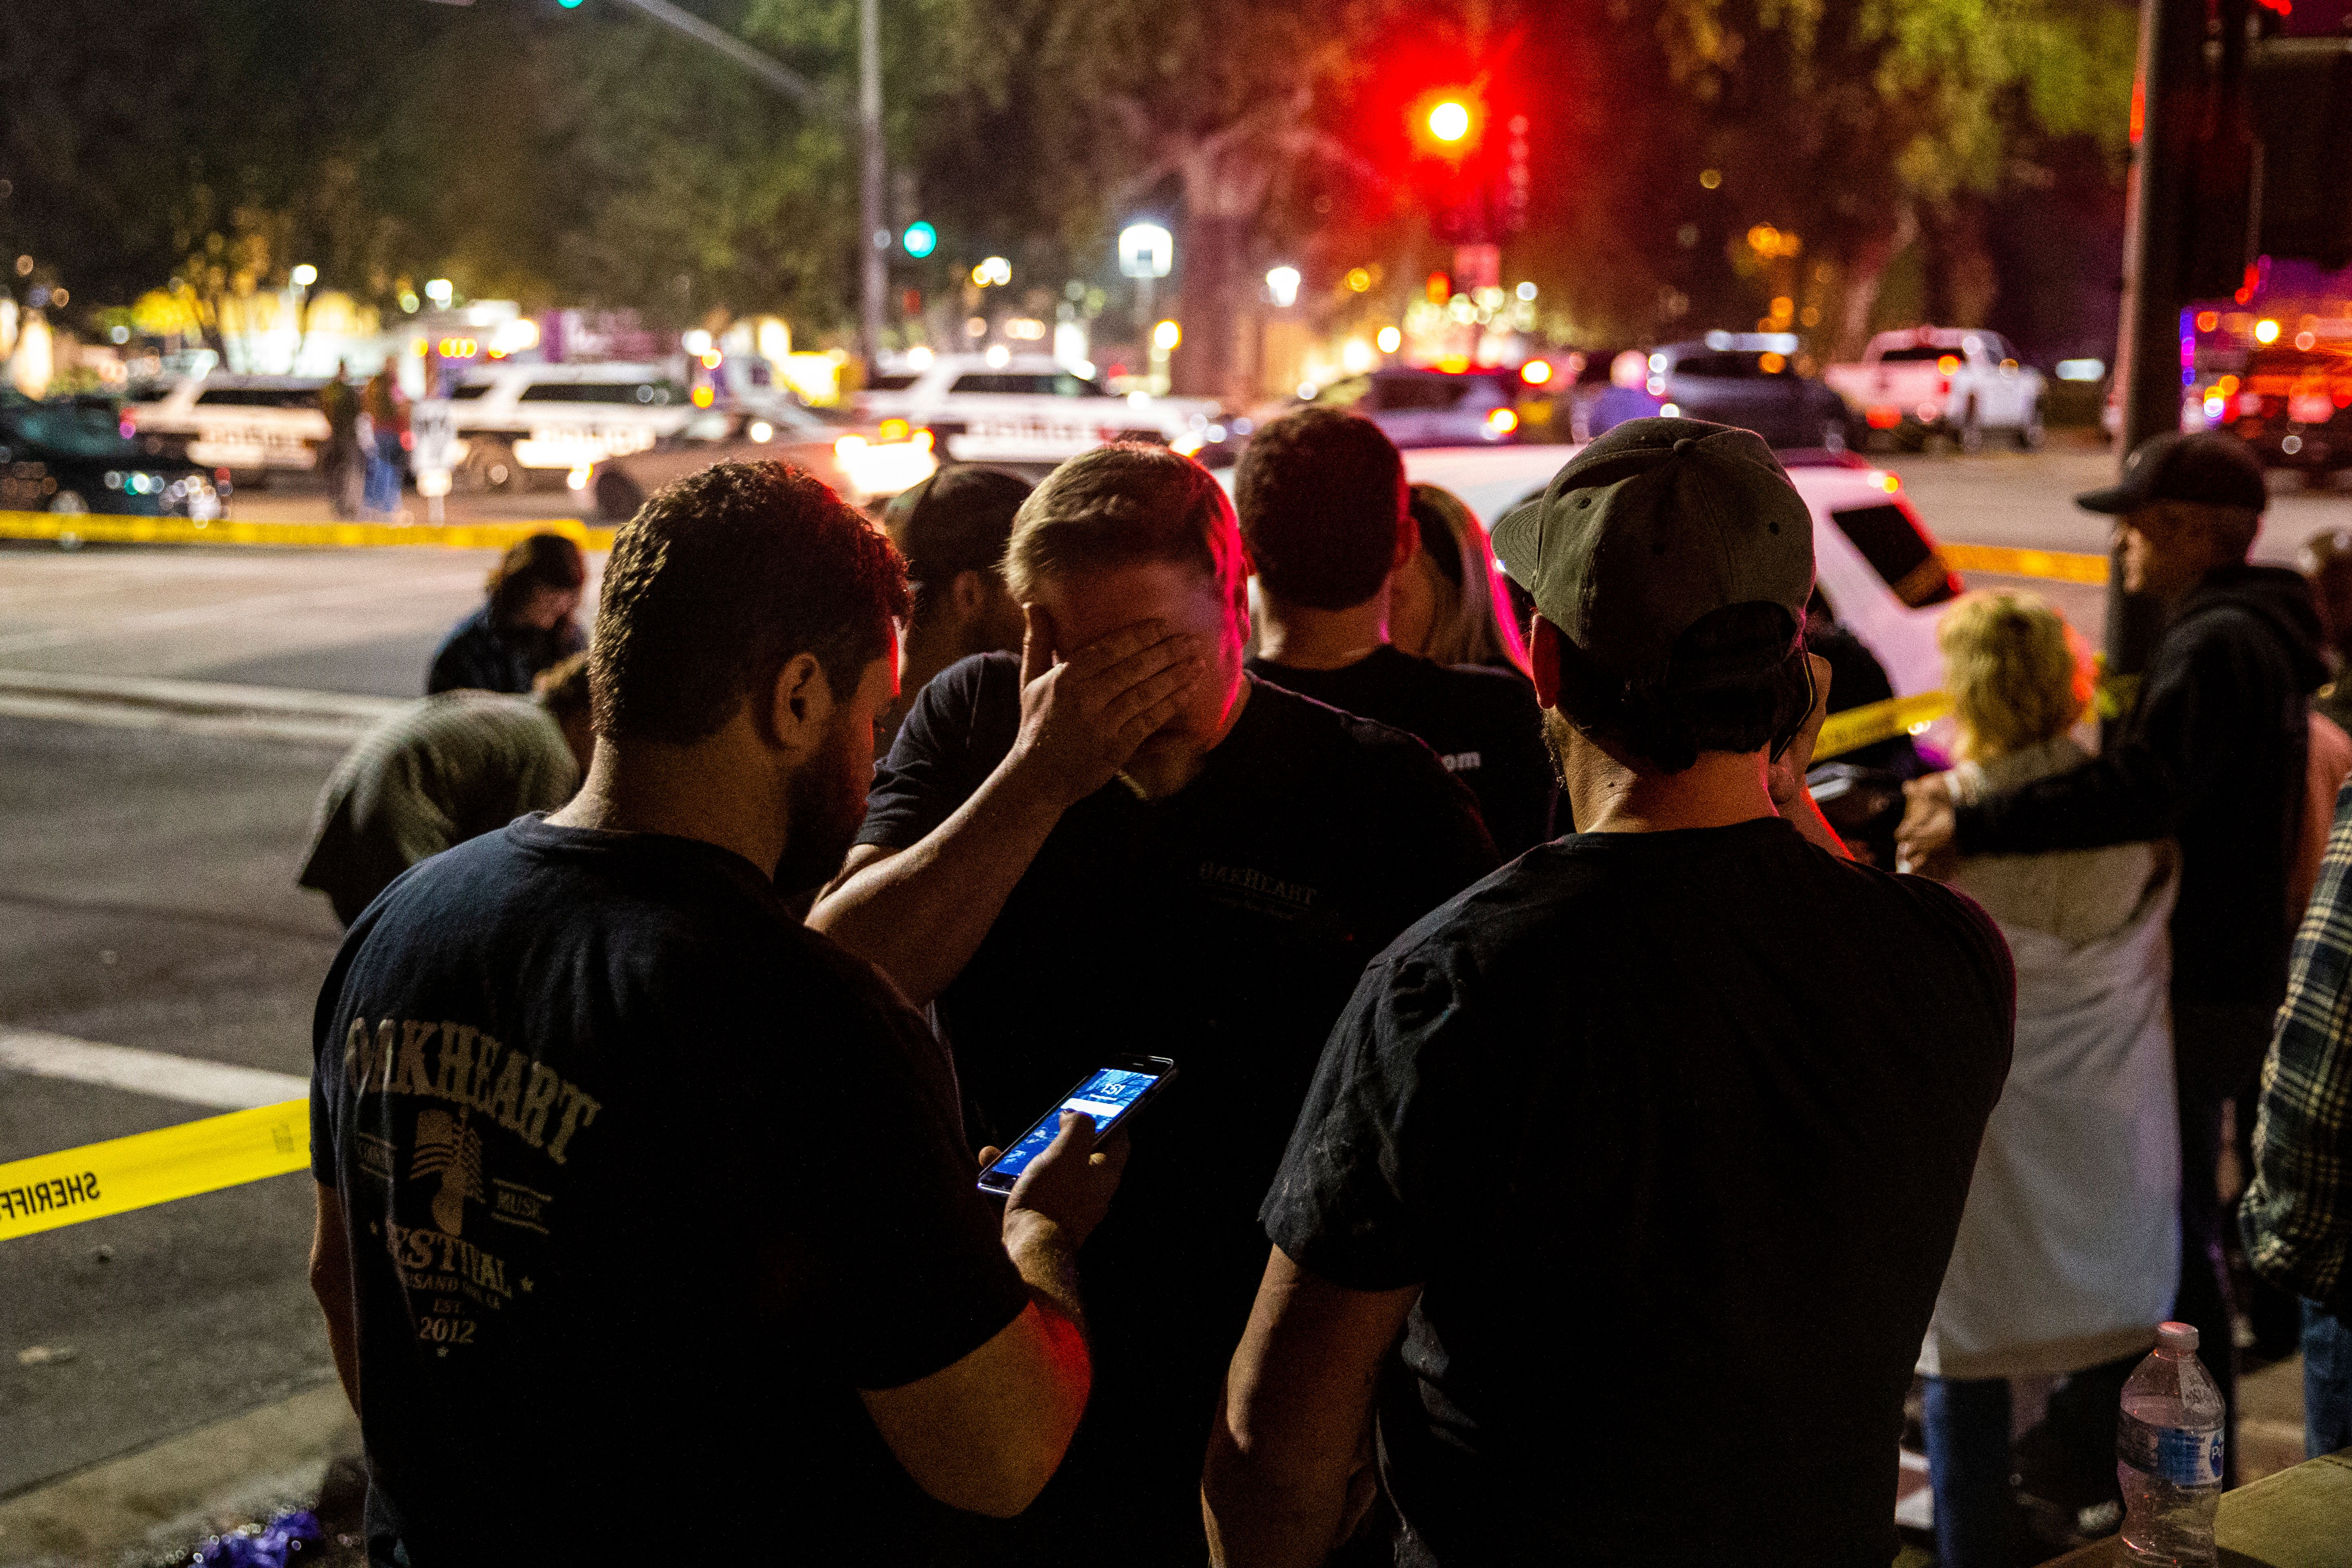 THOUSAND OAKS, CA - NOVEMBER 08: People stand in a parking lot along South Moorpark Road in the aftermath of a mass shooting at Borderline Bar & Grill after a gunman opened fire late Wednesday at a Thousand Oaks bar packed with hundreds of people attending a popular event for college students, causing multiple fatalities on November 8, 2018 in Thousand Oaks, California. The gunman burst into the bar around 11:20 p.m., cloaked in all black as he threw smoke bombs and began shooting at targets as young as 18 inside the Borderline Bar & Grill, authorities and witnesses said. (Photo by Kent Nishimura / Los Angeles Times via Getty Images)